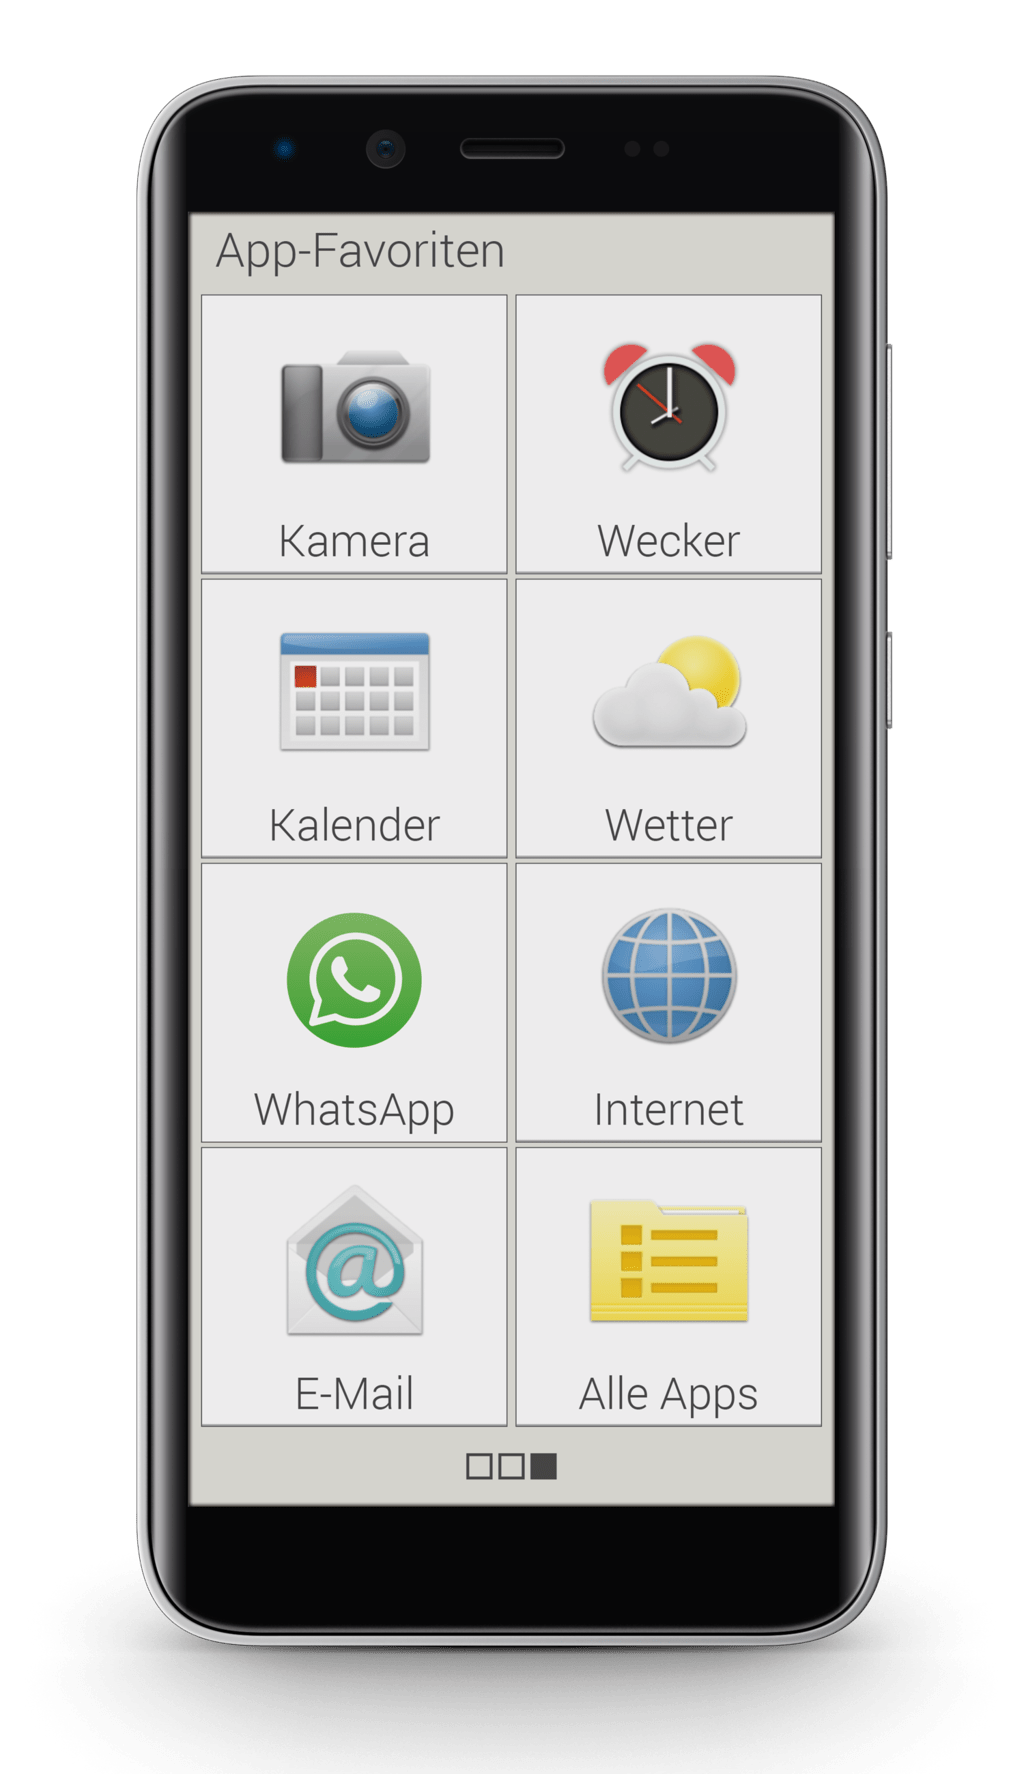 S3m_Front-GER-APPS_sRGB